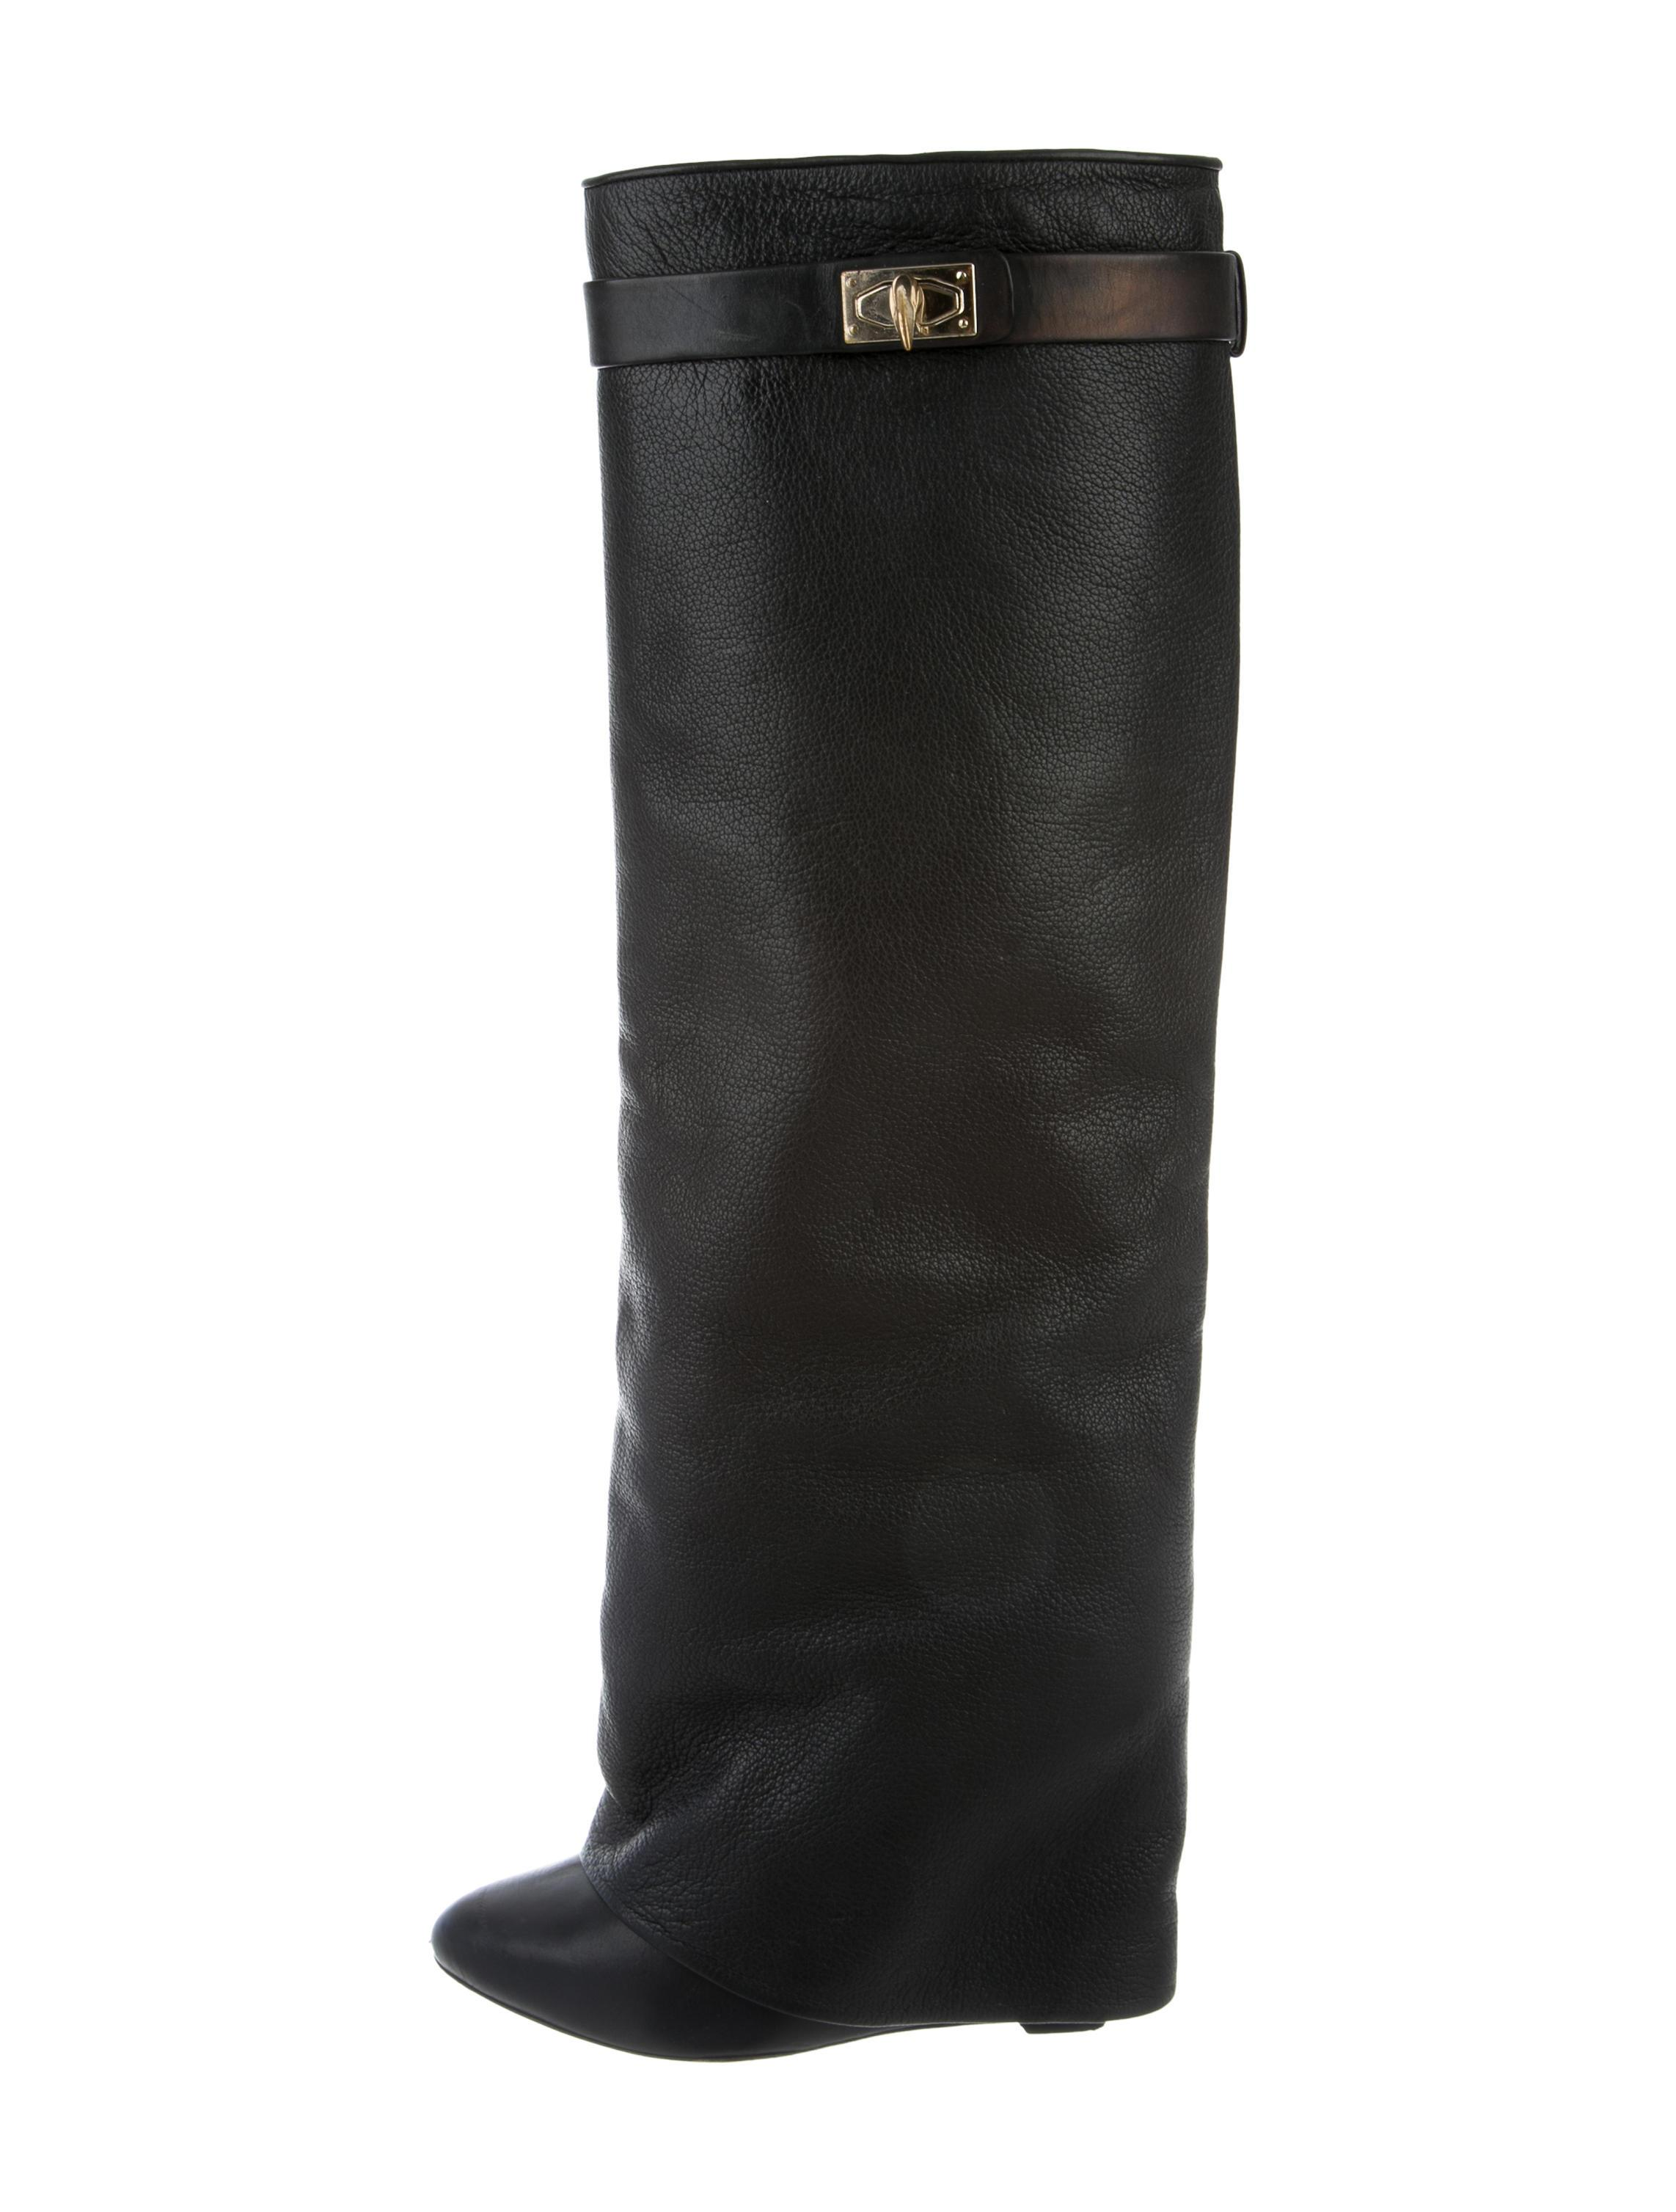 692d120d493e4 Givenchy Black Pebble Lock Fold-over Boots Booties Size Size Size US 8  Regular. Tory Burch Black Fleming Flat Thong - Nappa Leather Sandals ...